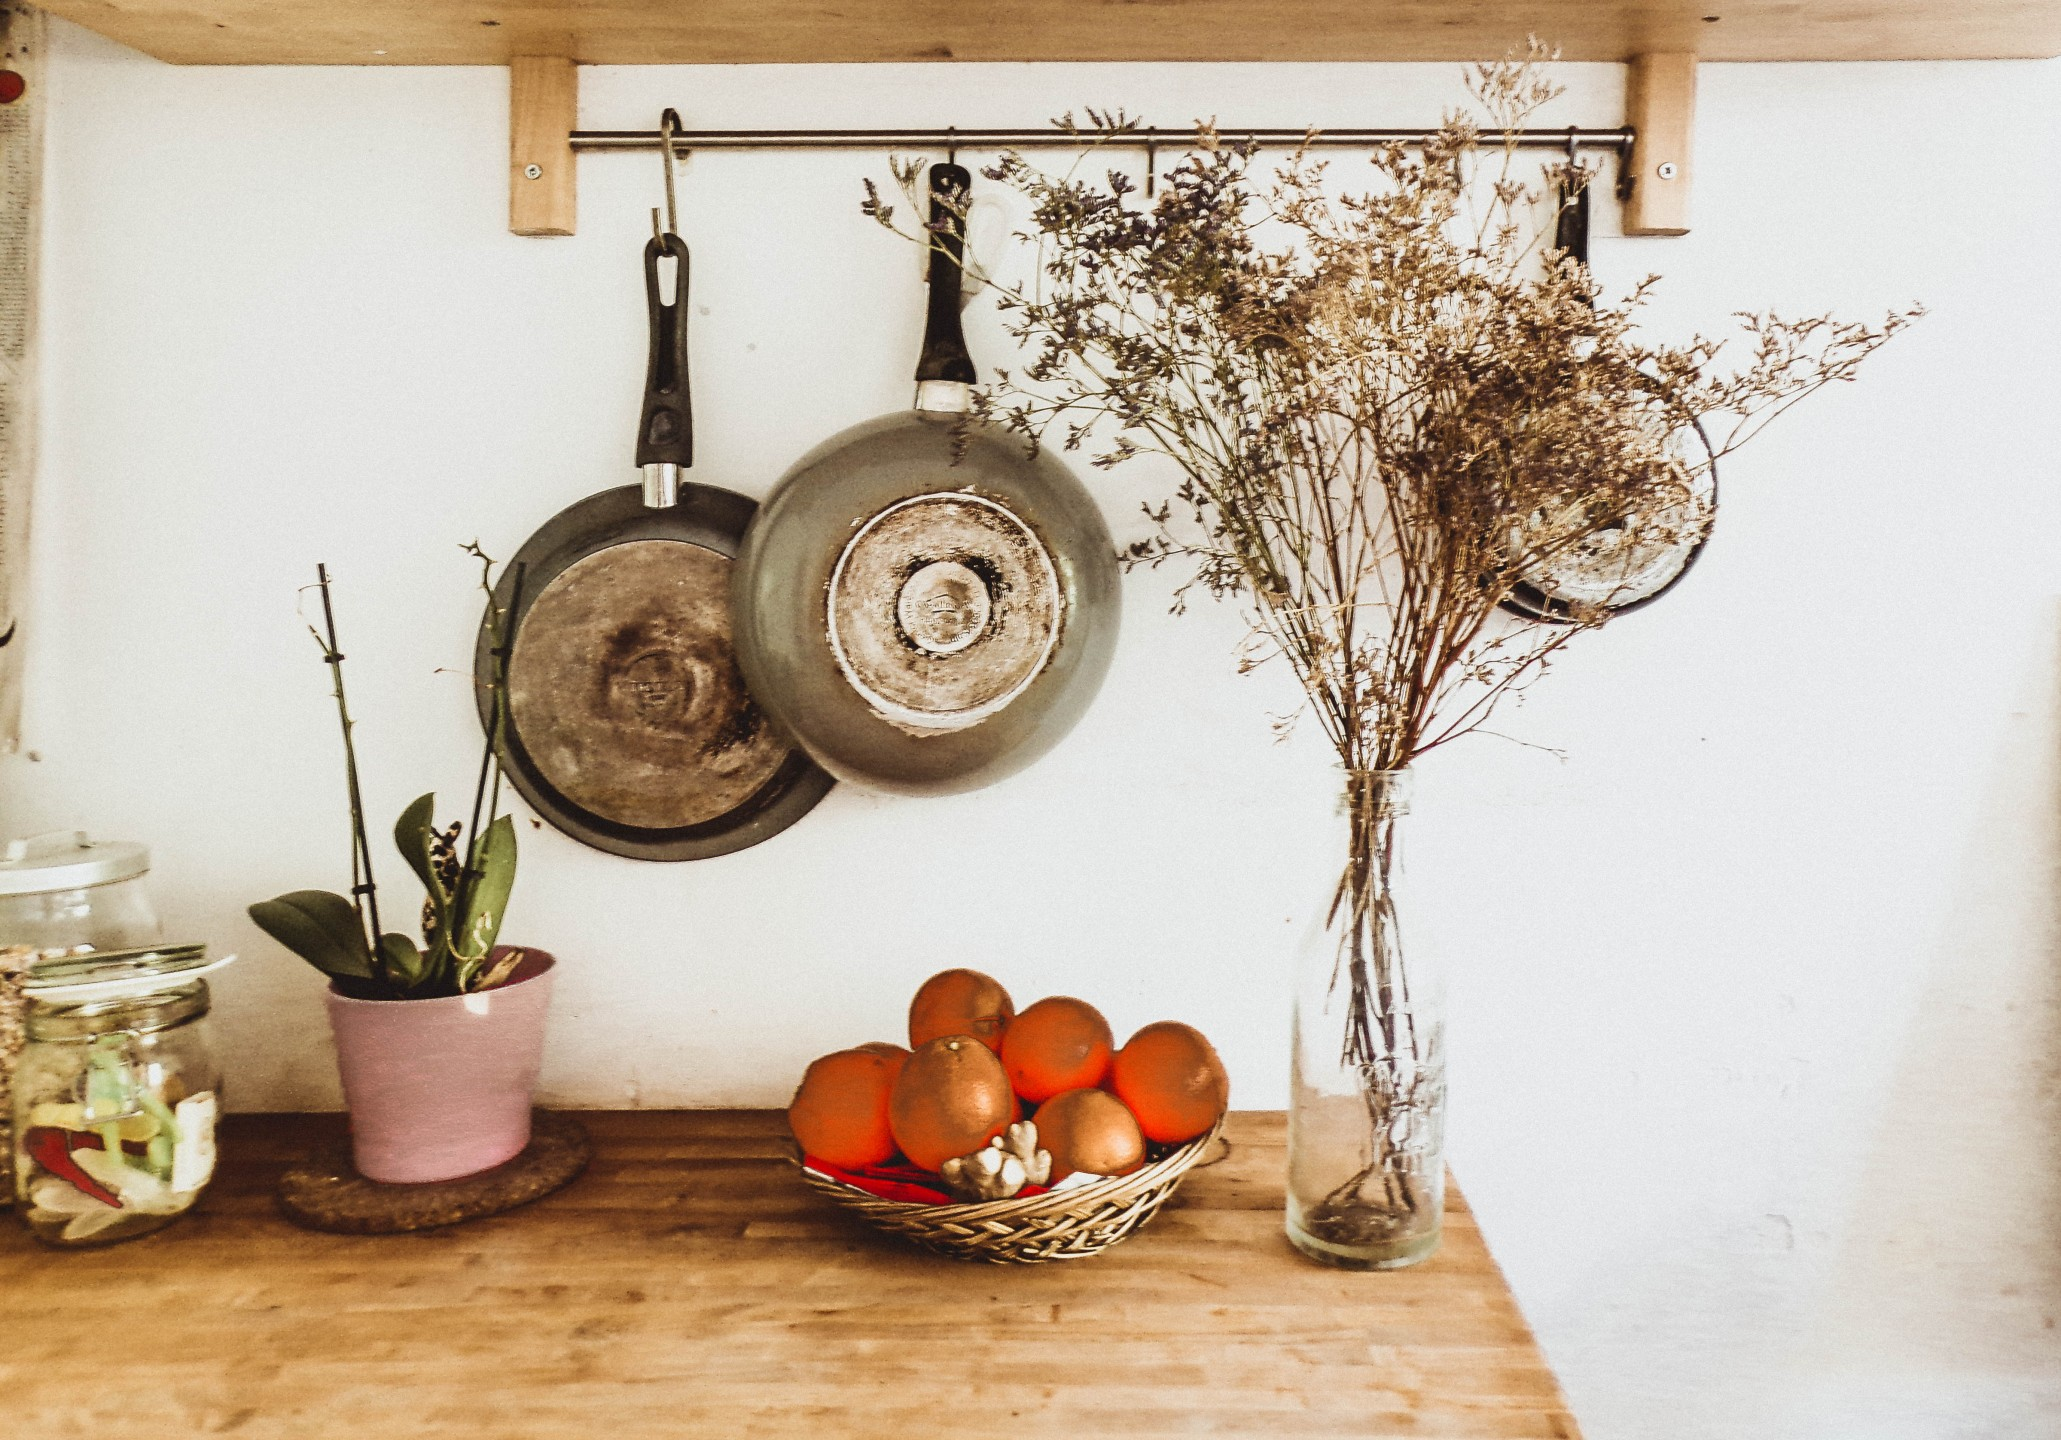 squarerooms niki nagy metal steel pans hanging kitchen wall wooden table rustic countryside farmhouse dried flowers